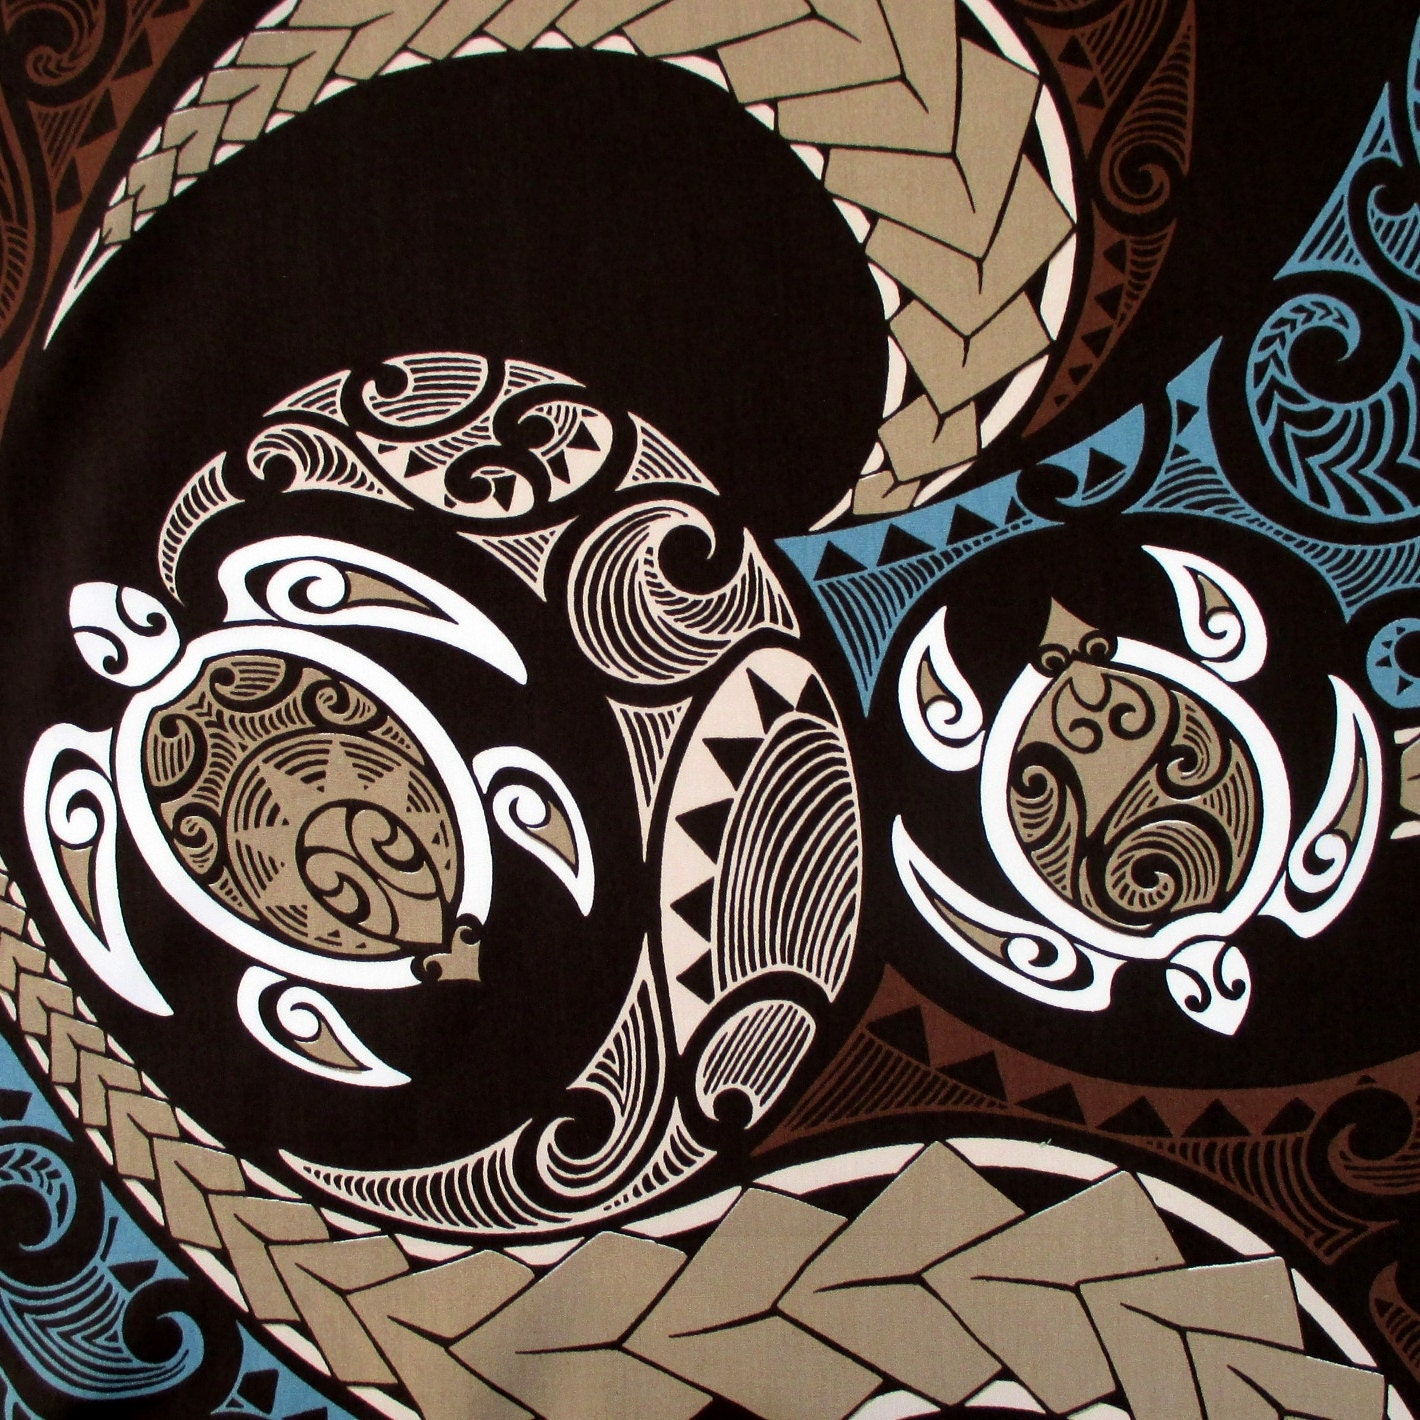 Fabric Hawaiian Honu Sea Turtle Swirl Polynesian Tapa Tattoo